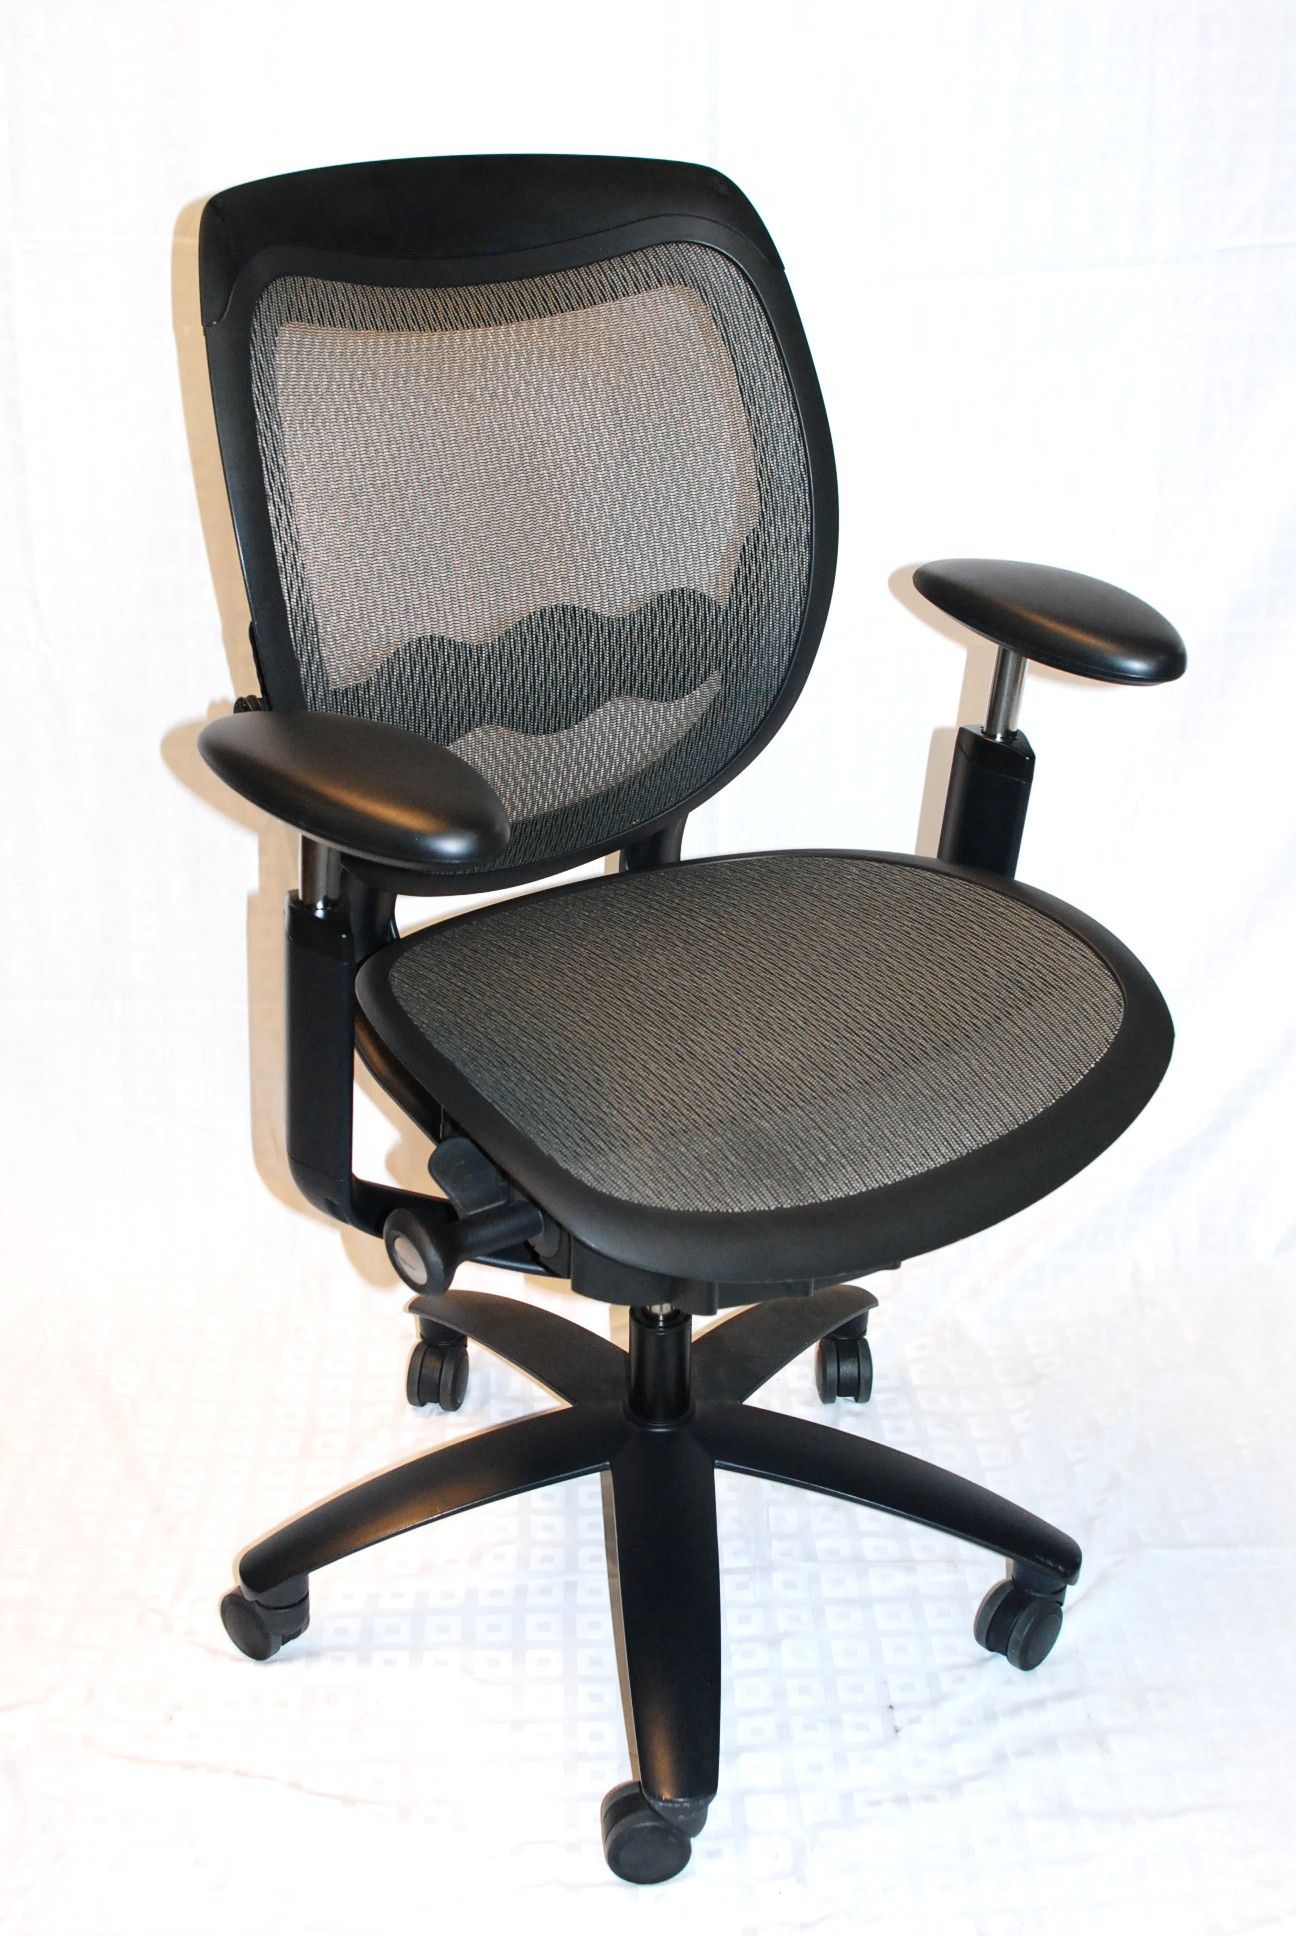 Izzy Design Maxwell Chair   Get A Quote Today For Your Next Office Furniture !